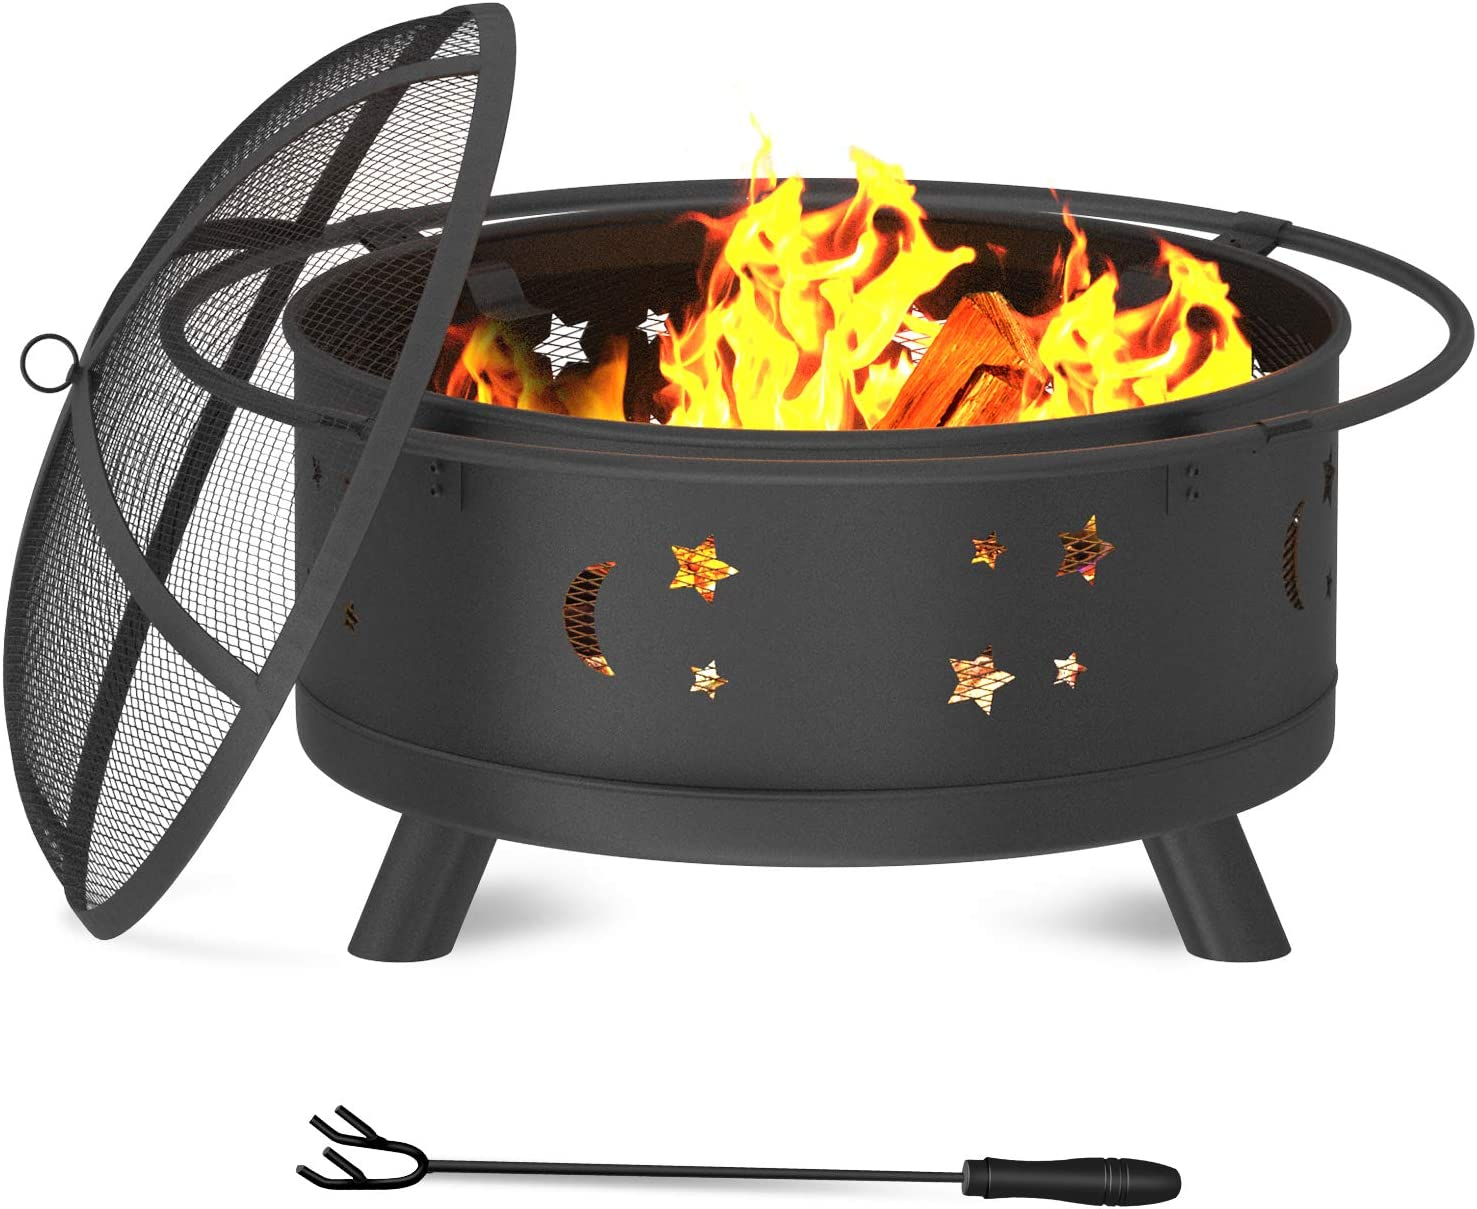 """WINWEND Fire Pit, 30"""" Firepit Outdoor Wood Burning for Patio & Backyard with Spark Screen and Fireplace Poker (Stars & Moons Design)"""